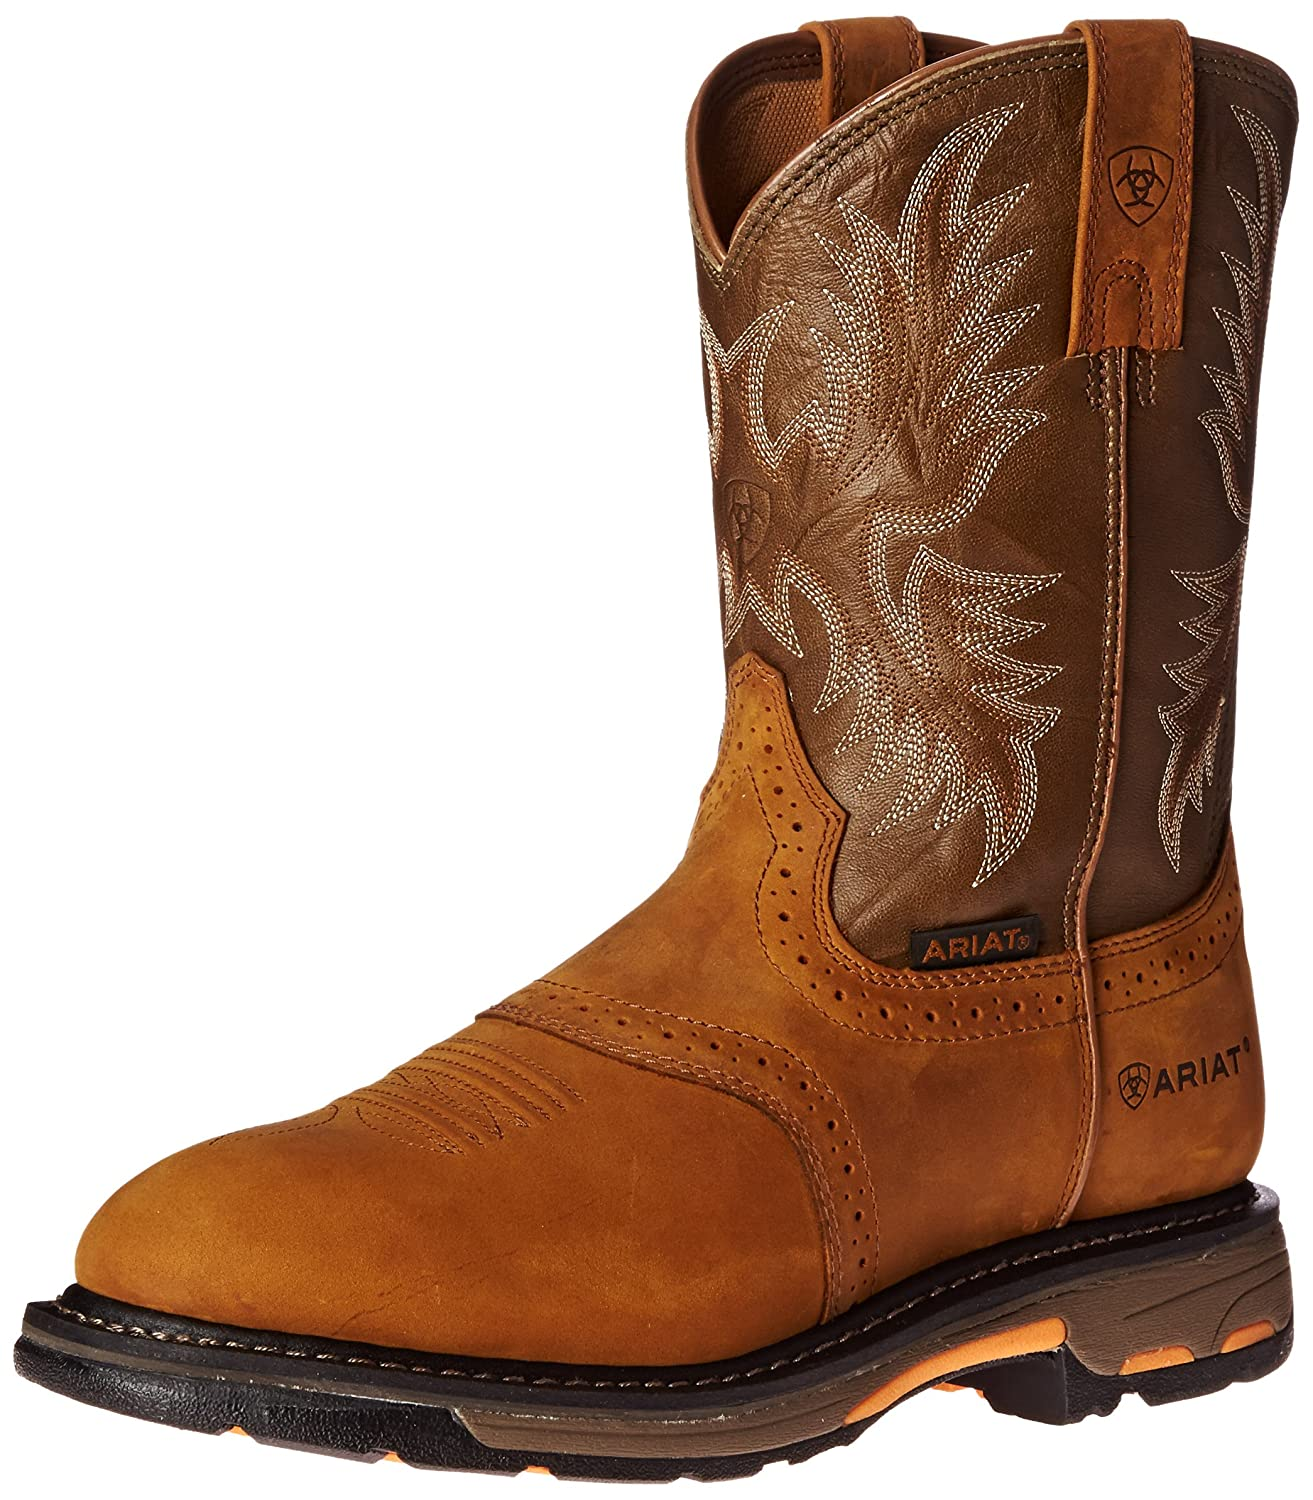 Ariat メンズ B0030FAEYO 11.5 Wide (EE) US|Aged Bark/Army Green Aged Bark/Army Green 11.5 Wide (EE) US